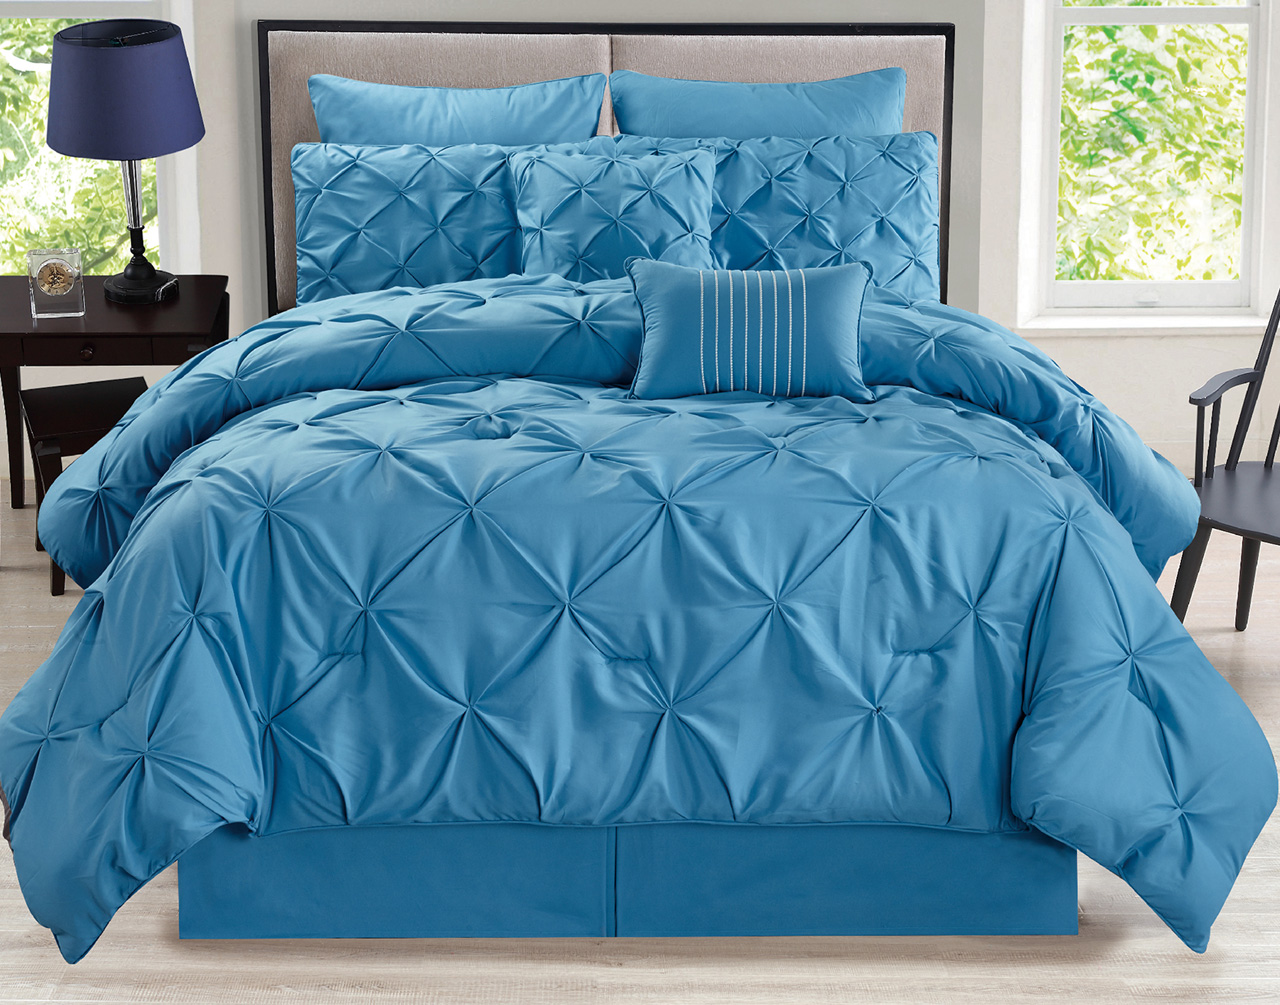 sets home modern chic tropical aqua bedding pin comforter comforters color set blue teal in beach beautiful grey ebay pillows garden